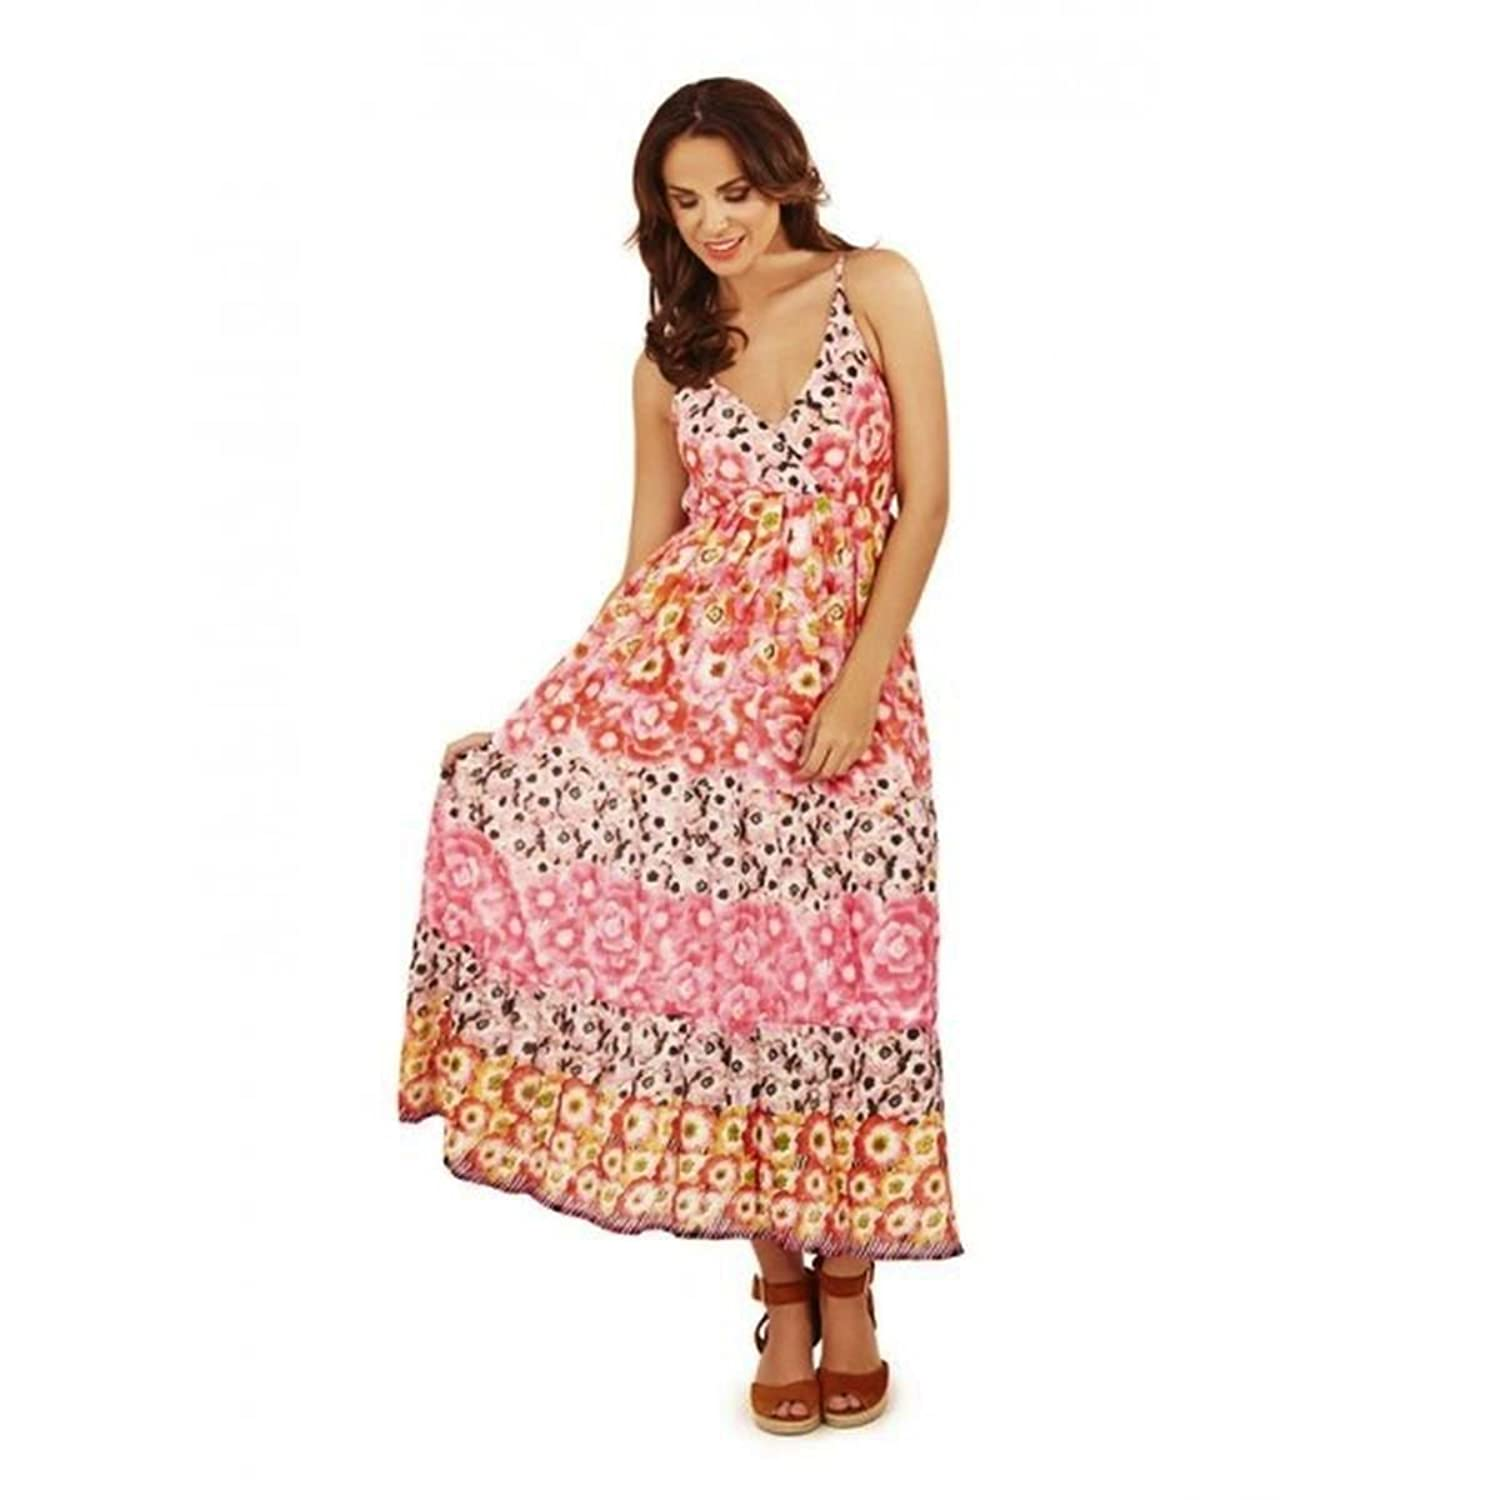 Pink & Red Floral Empire Dress Summer Beach Gypsy Sundress Maxi